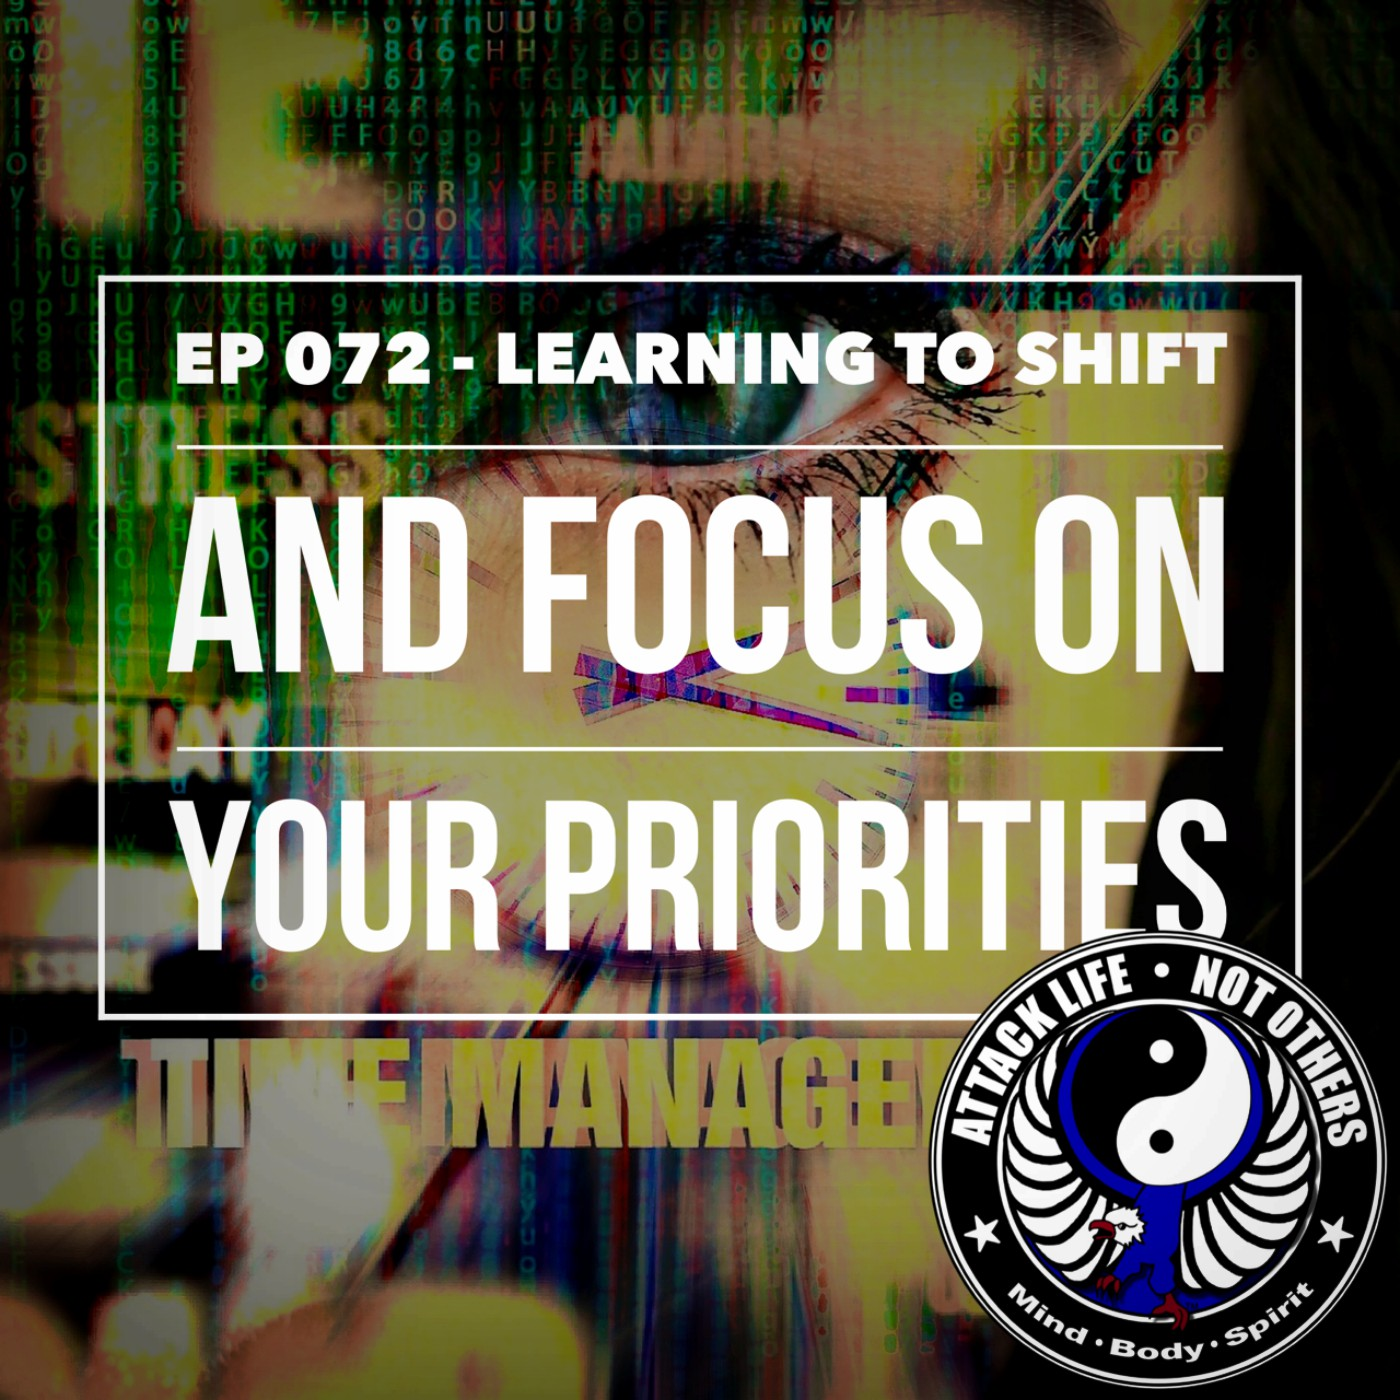 Ep 072 - Learning to Shift and Focus on Your Priorities